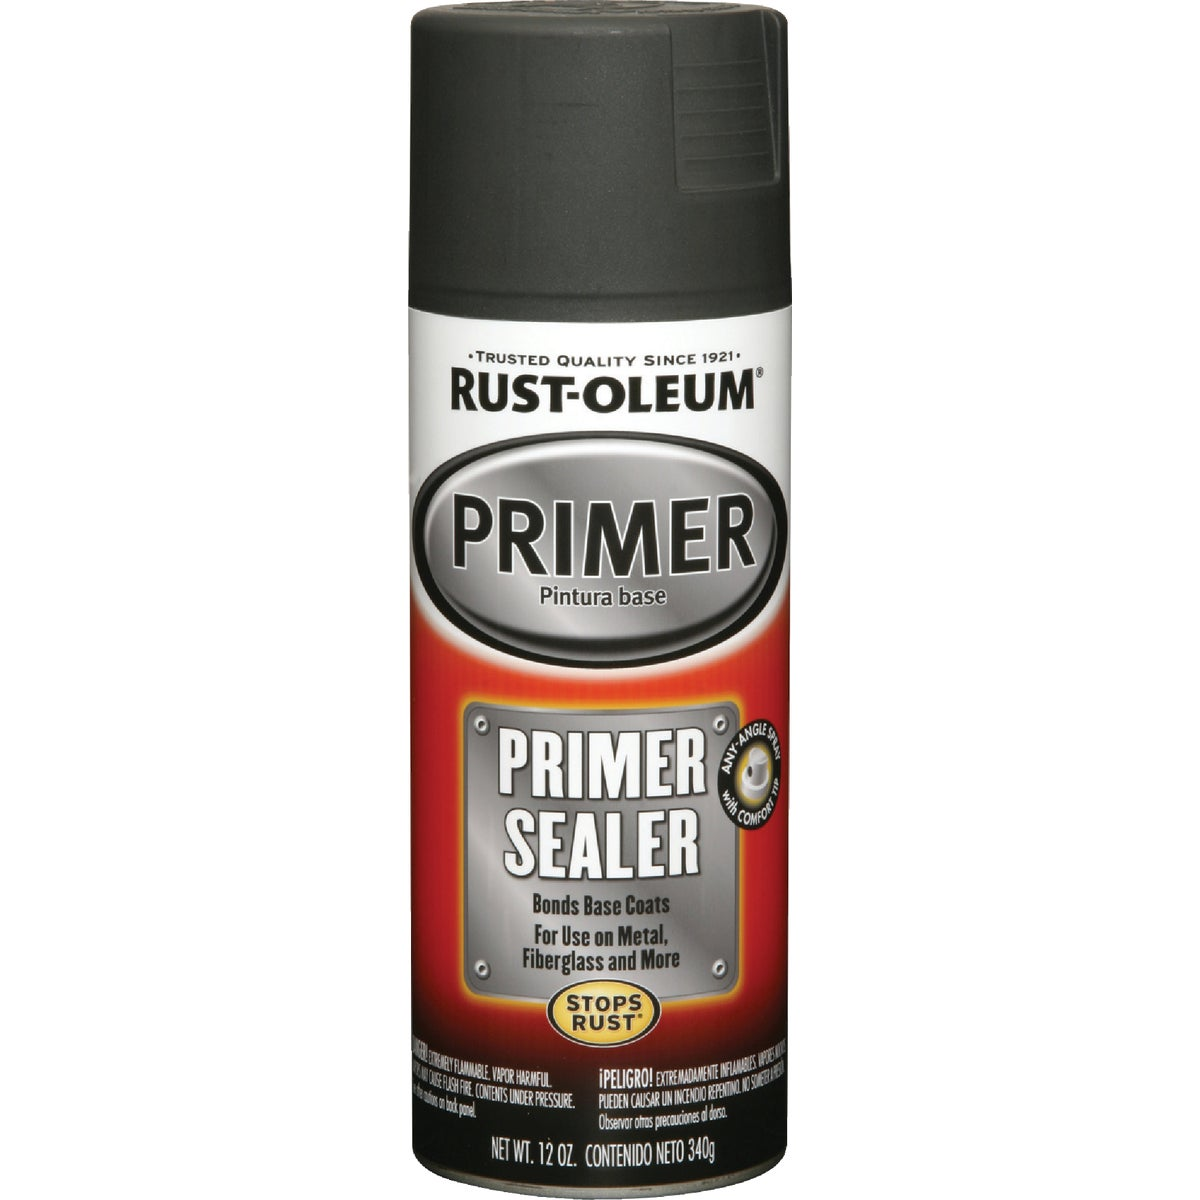 Item 795304, A sprayable formula that prevents paint from soaking into a primed surface.